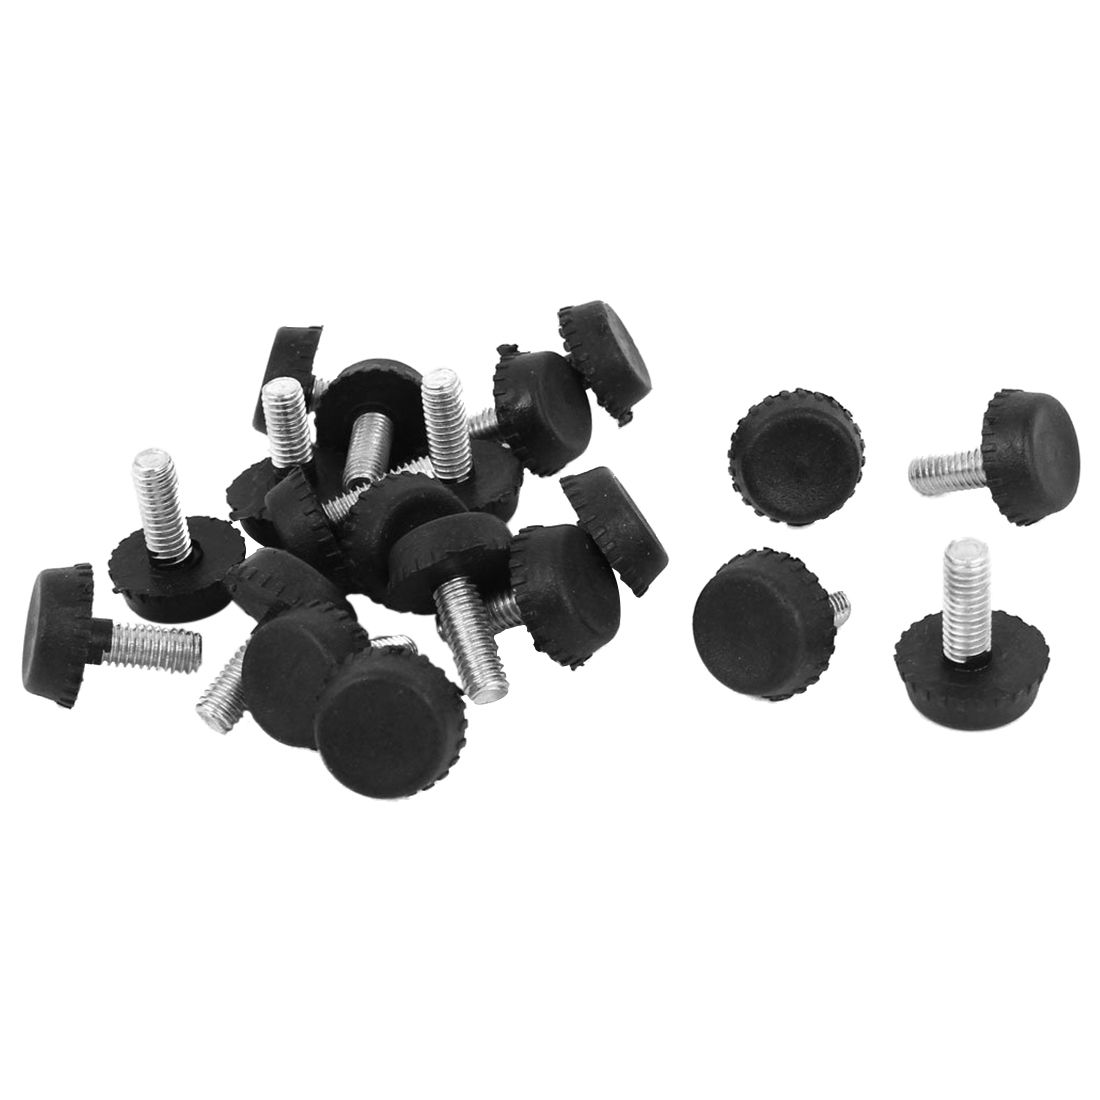 20pcs Screw On Type Furniture Glide Leveling Foot...